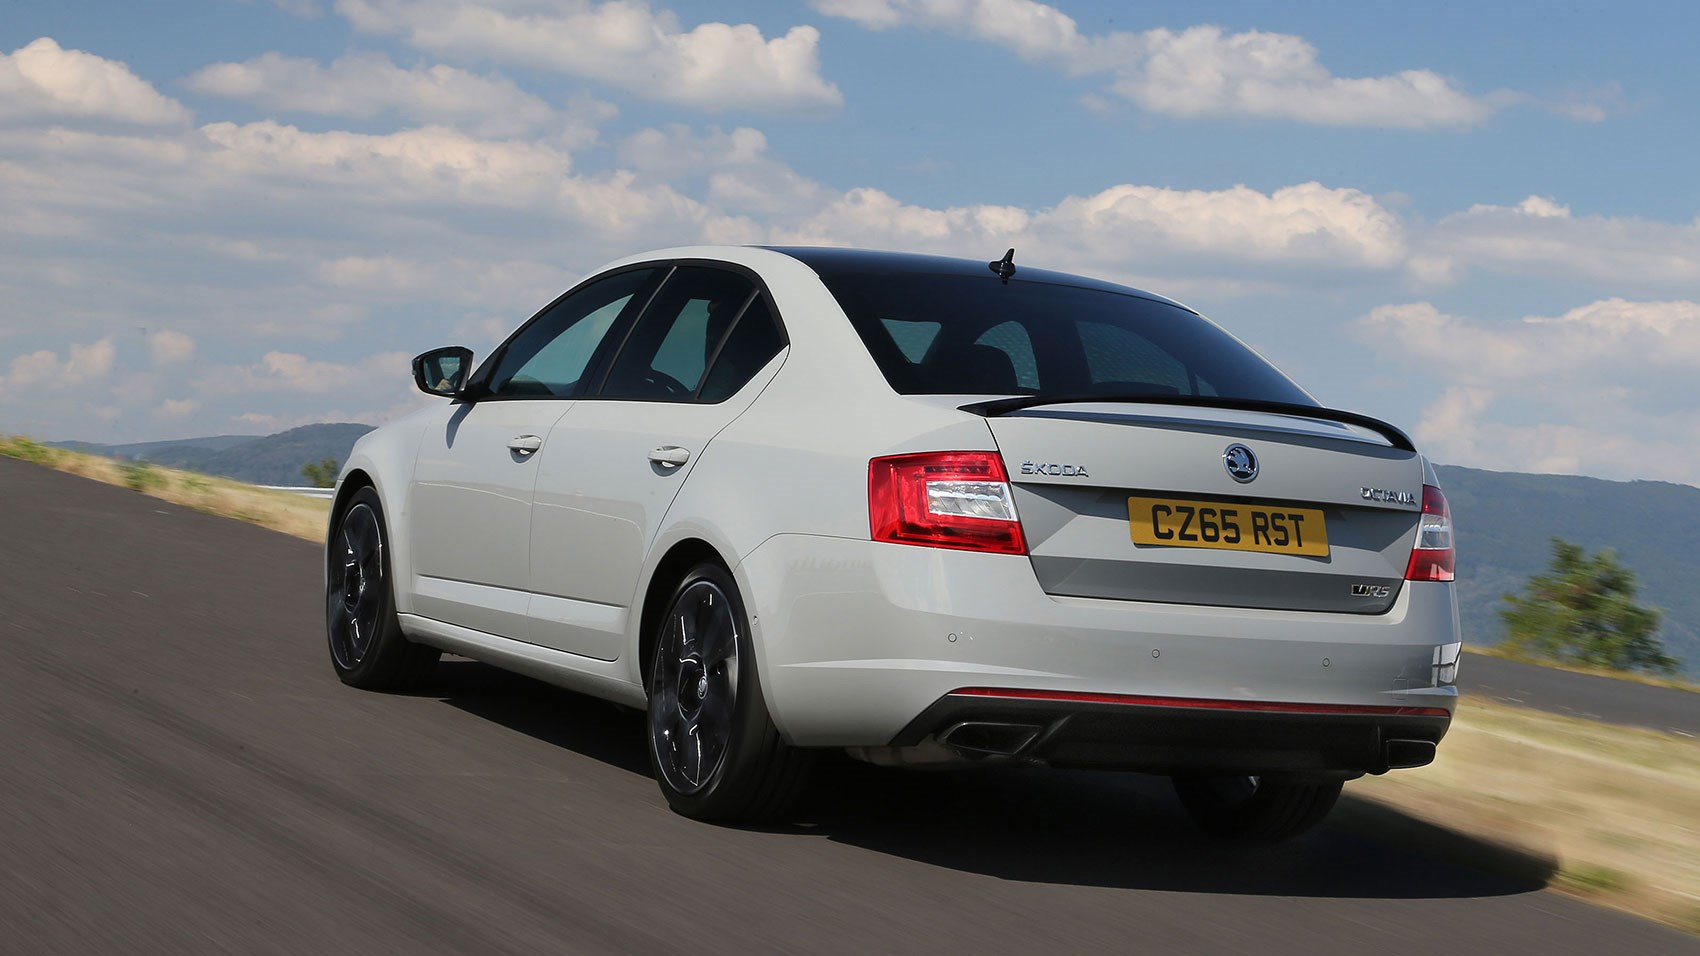 skoda octavia vrs 230 2015 review car magazine. Black Bedroom Furniture Sets. Home Design Ideas